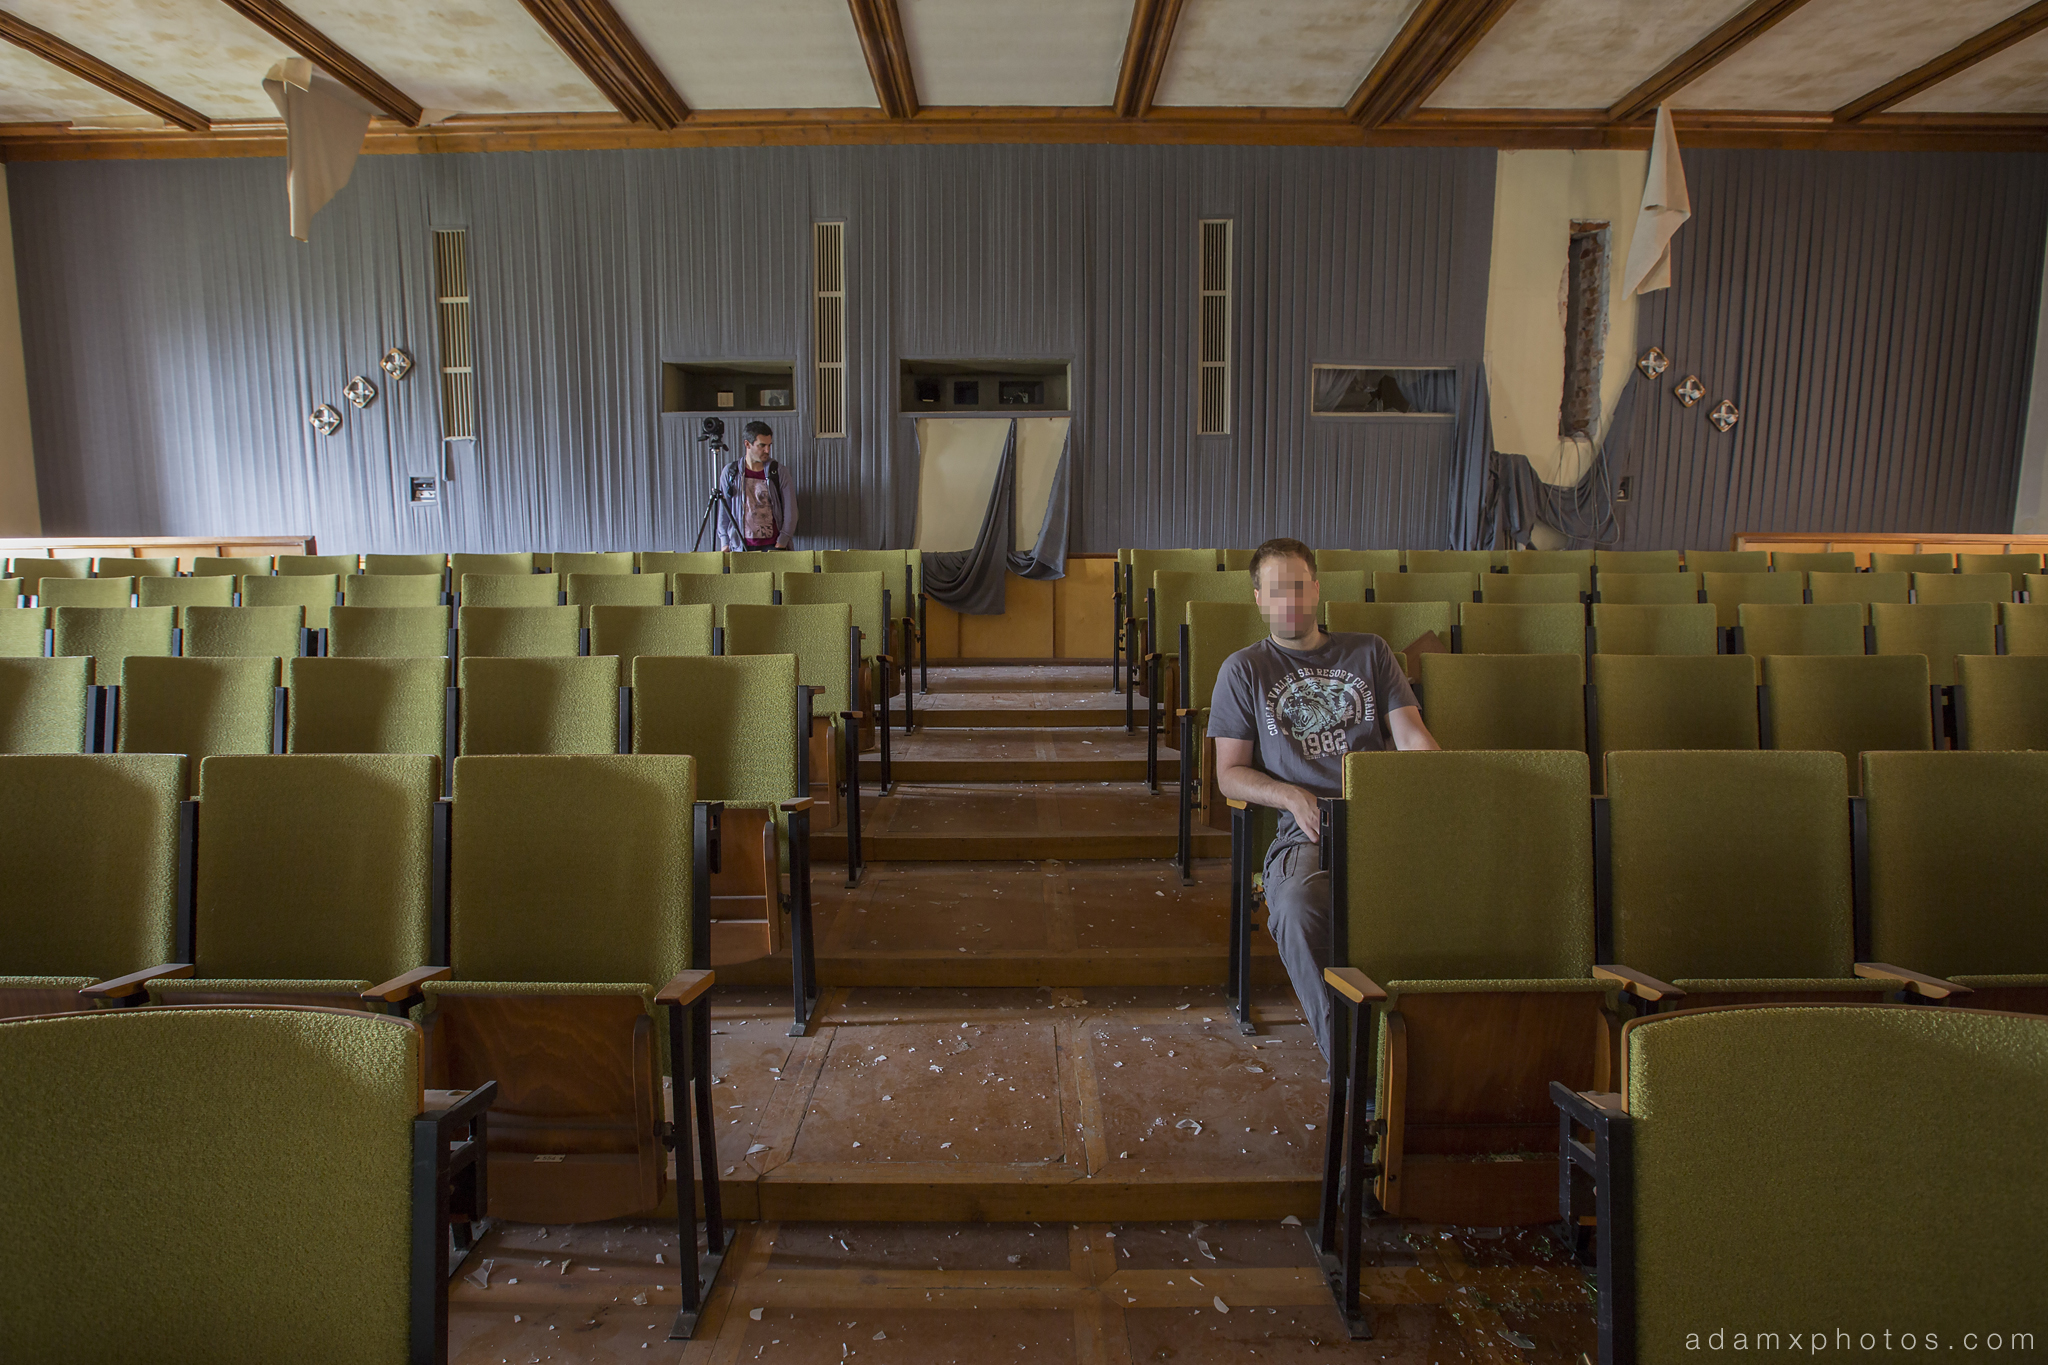 Adam X Urbex Nazi School Partishule N DDR Horsaal Germany Urban Exploration Decay Lost Abandoned auditorium ceiling seats chairs stage selfie James Kerwin